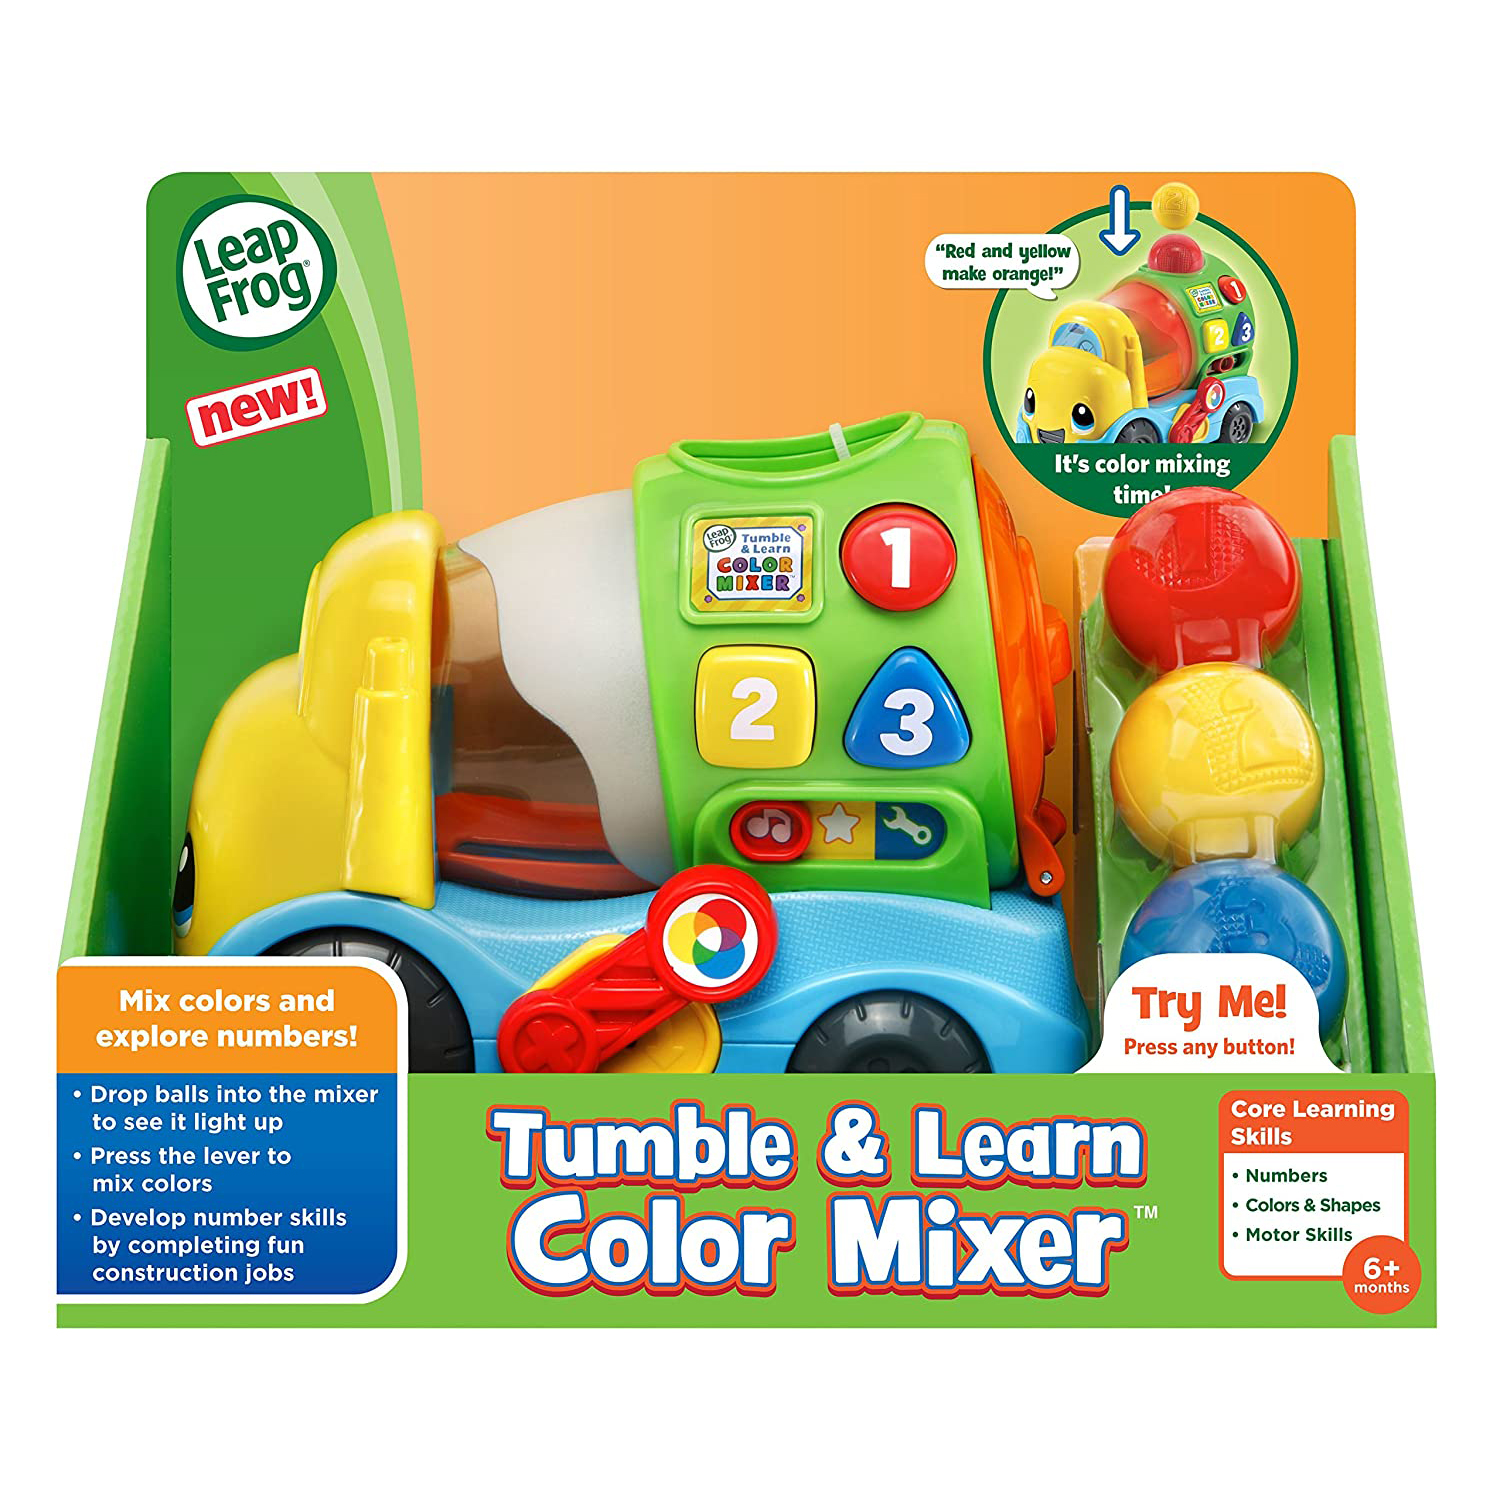 Tumble & Learn Color Mixer